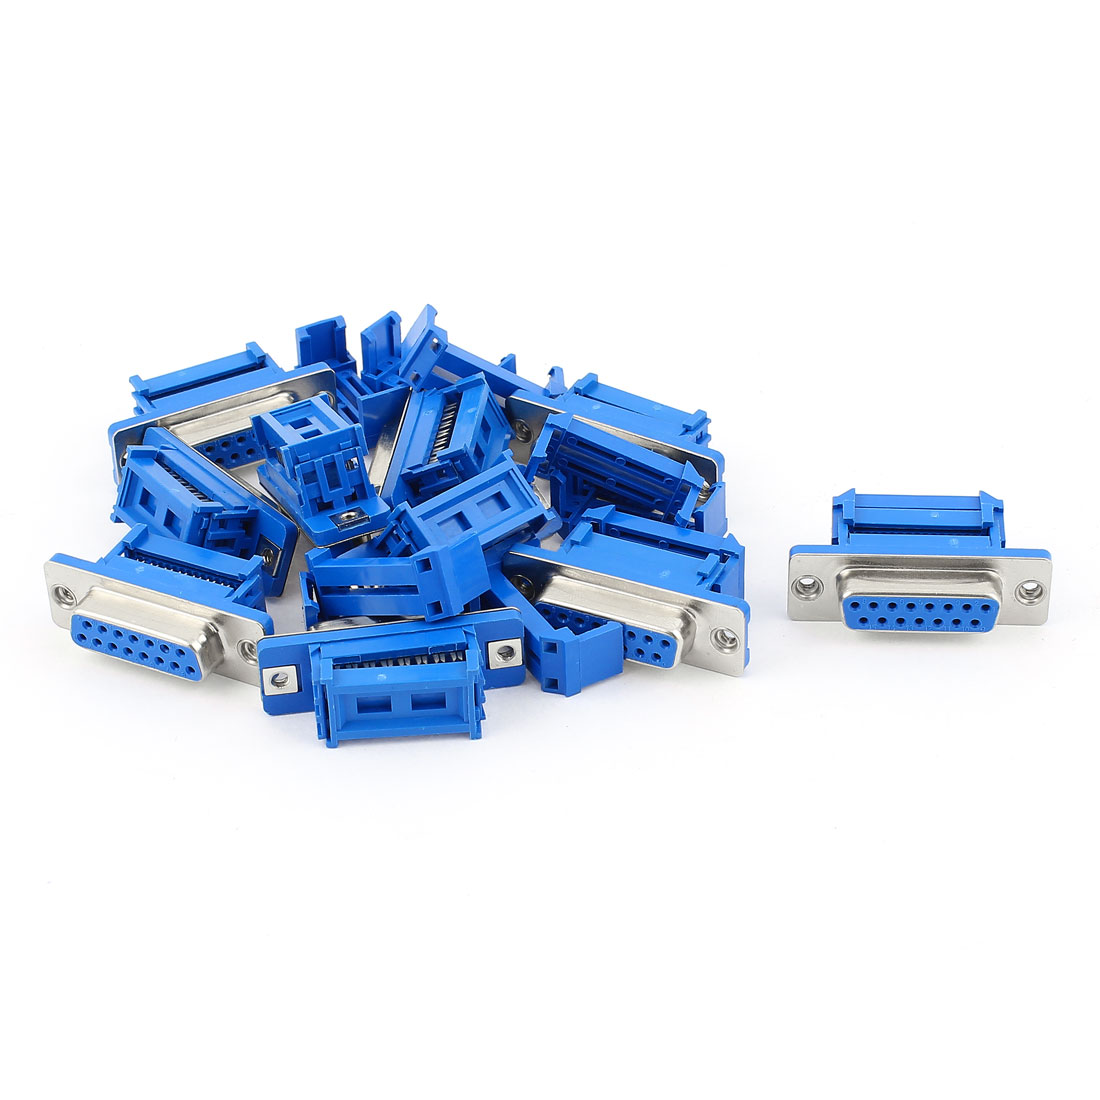 10pcs D-SUB DB15 15 Pin Female IDC Type Adapter Connector for Flat Ribbon Cable